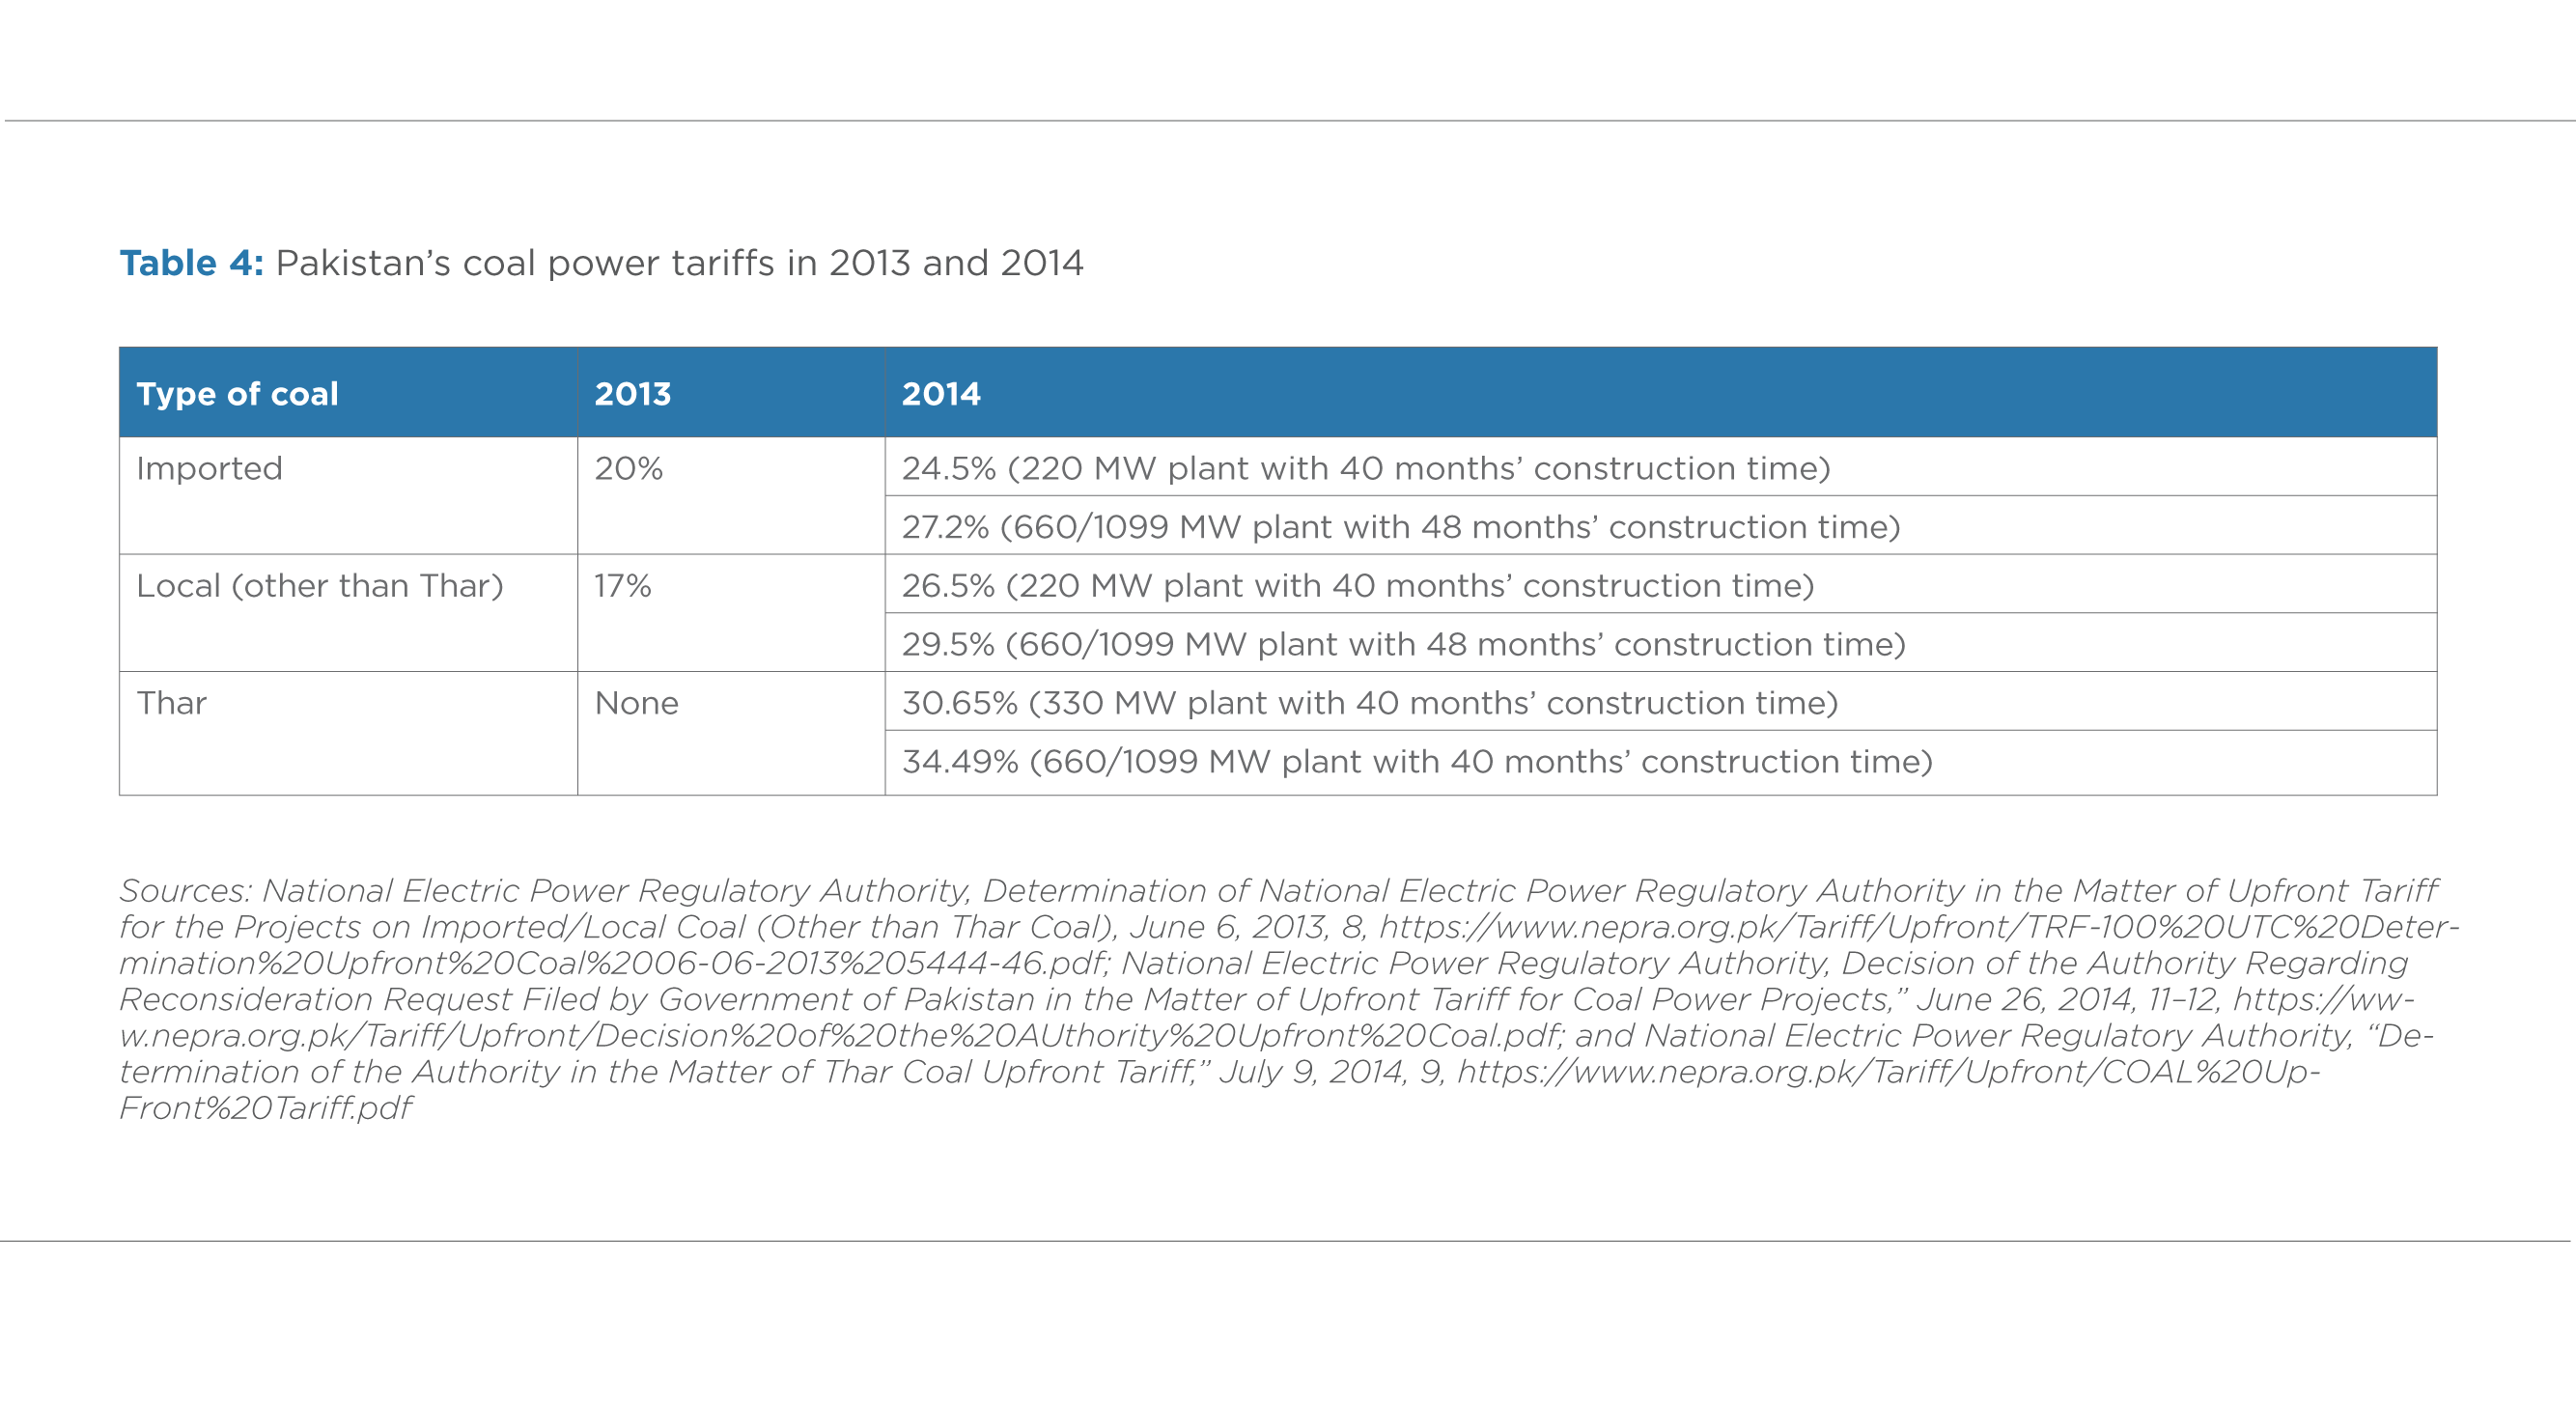 TABLE 4. PAKISTAN'S COAL POWER TARIFFS IN 2013 AND 2014